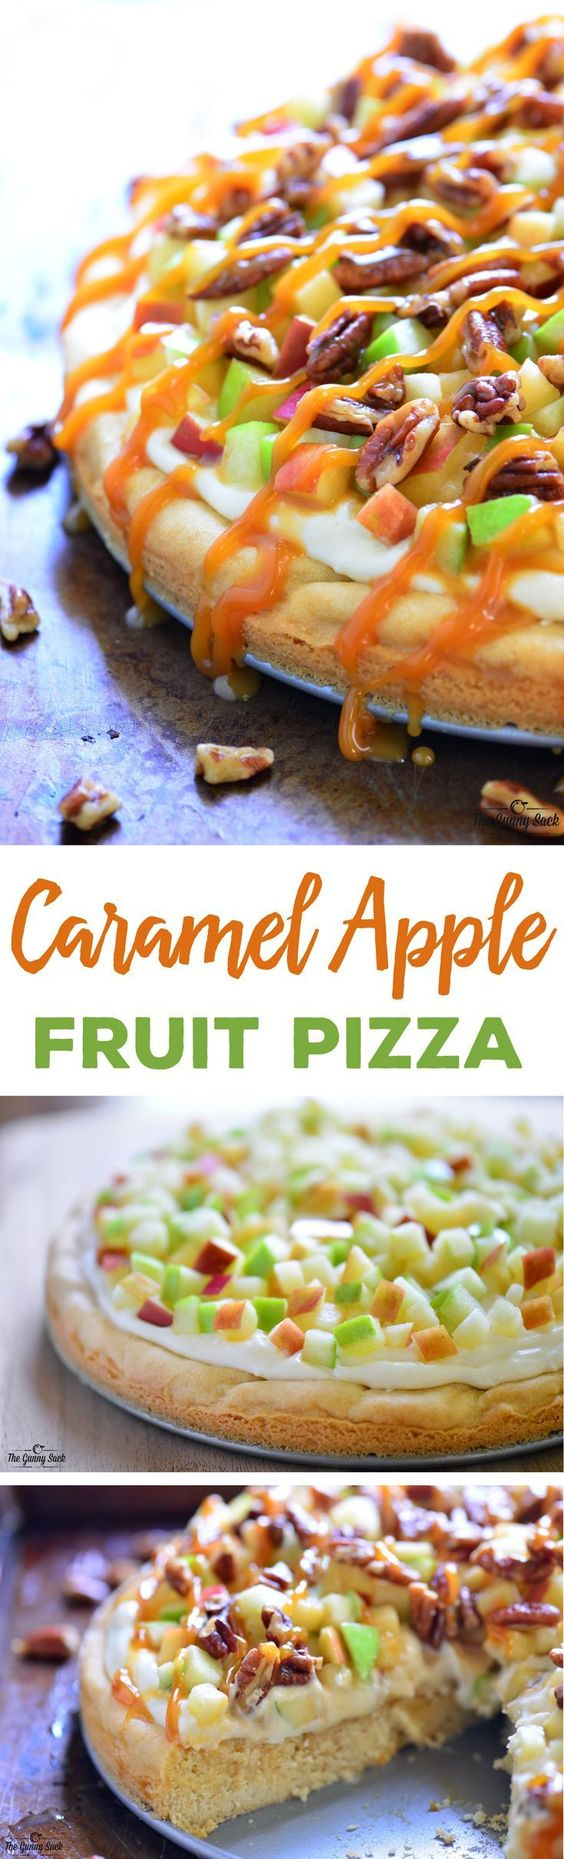 This Caramel Apple Fruit Pizza is a delicious fall dessert with a sugar cookie crust, cream cheese frosting, toasted pecans and a drizzle of caramel.: